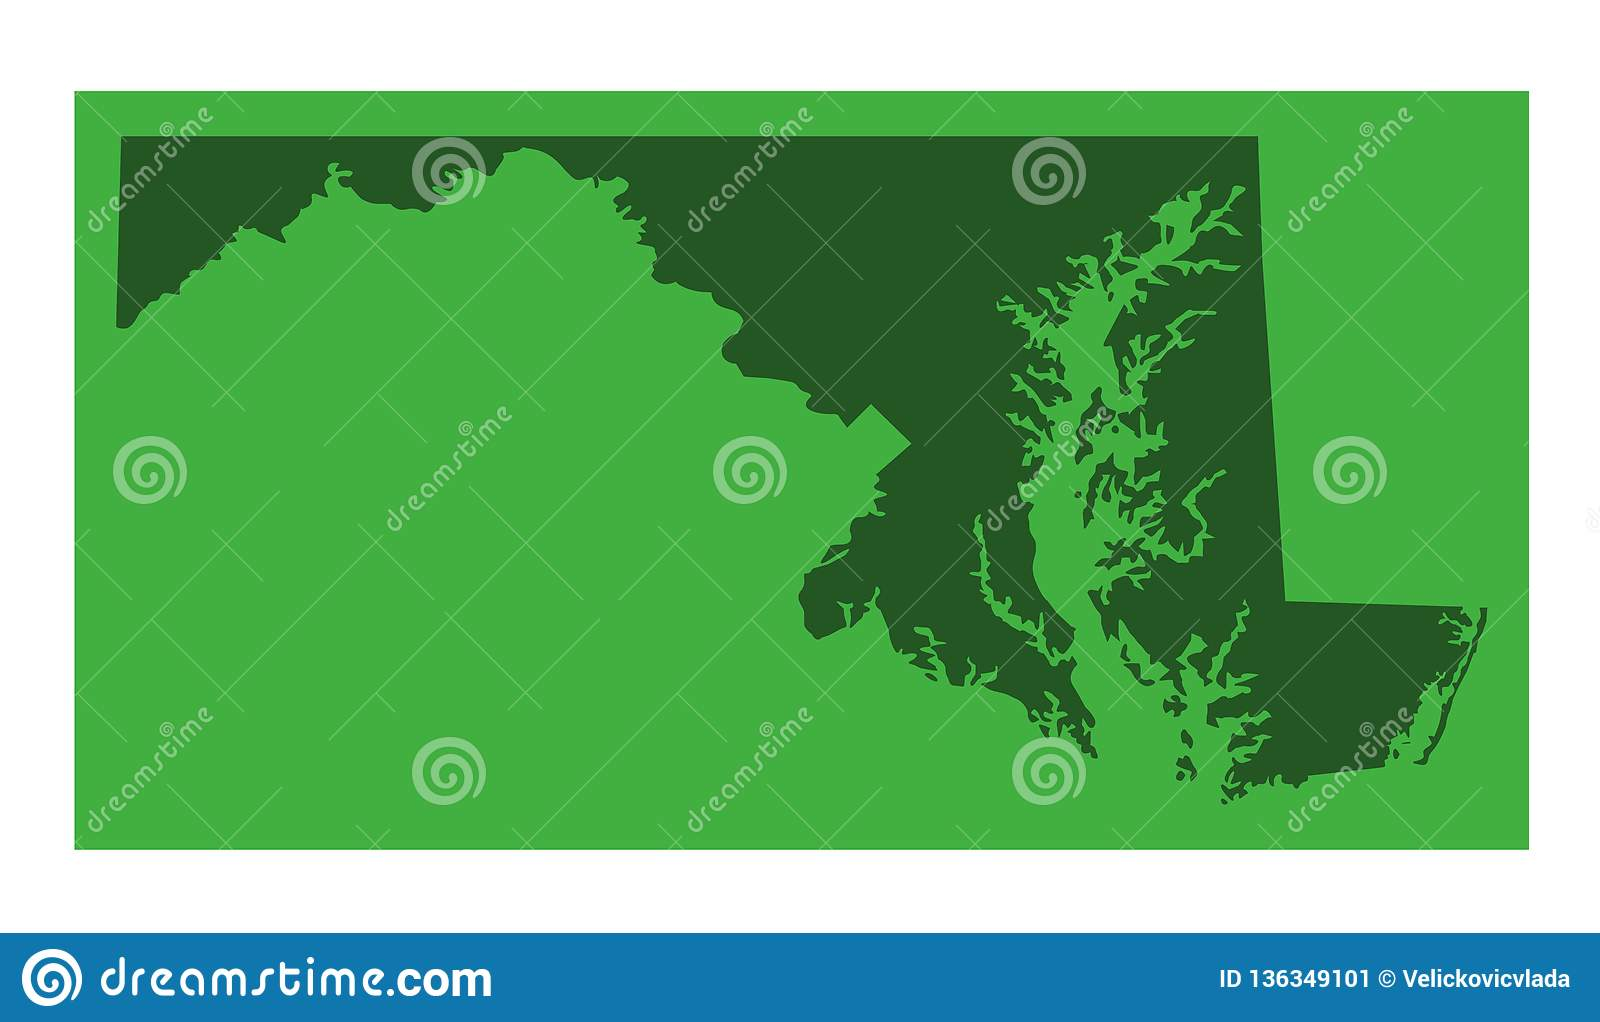 Maryland Map - State In The Mid-Atlantic Region Of The United States ...